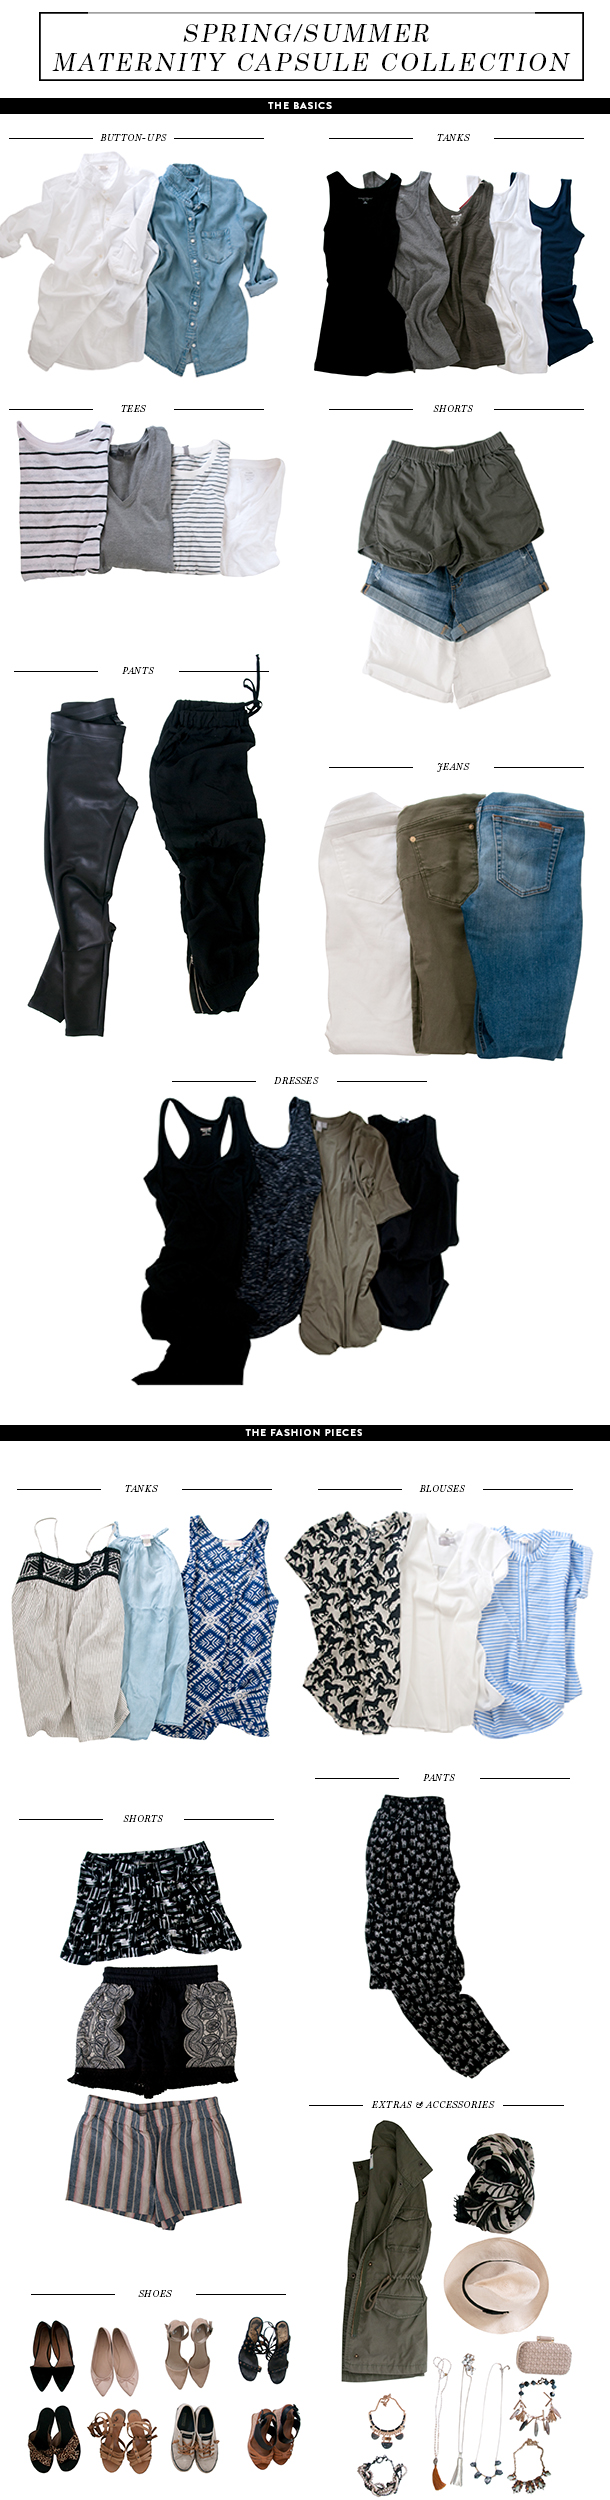 spring summer maternity capsule collection